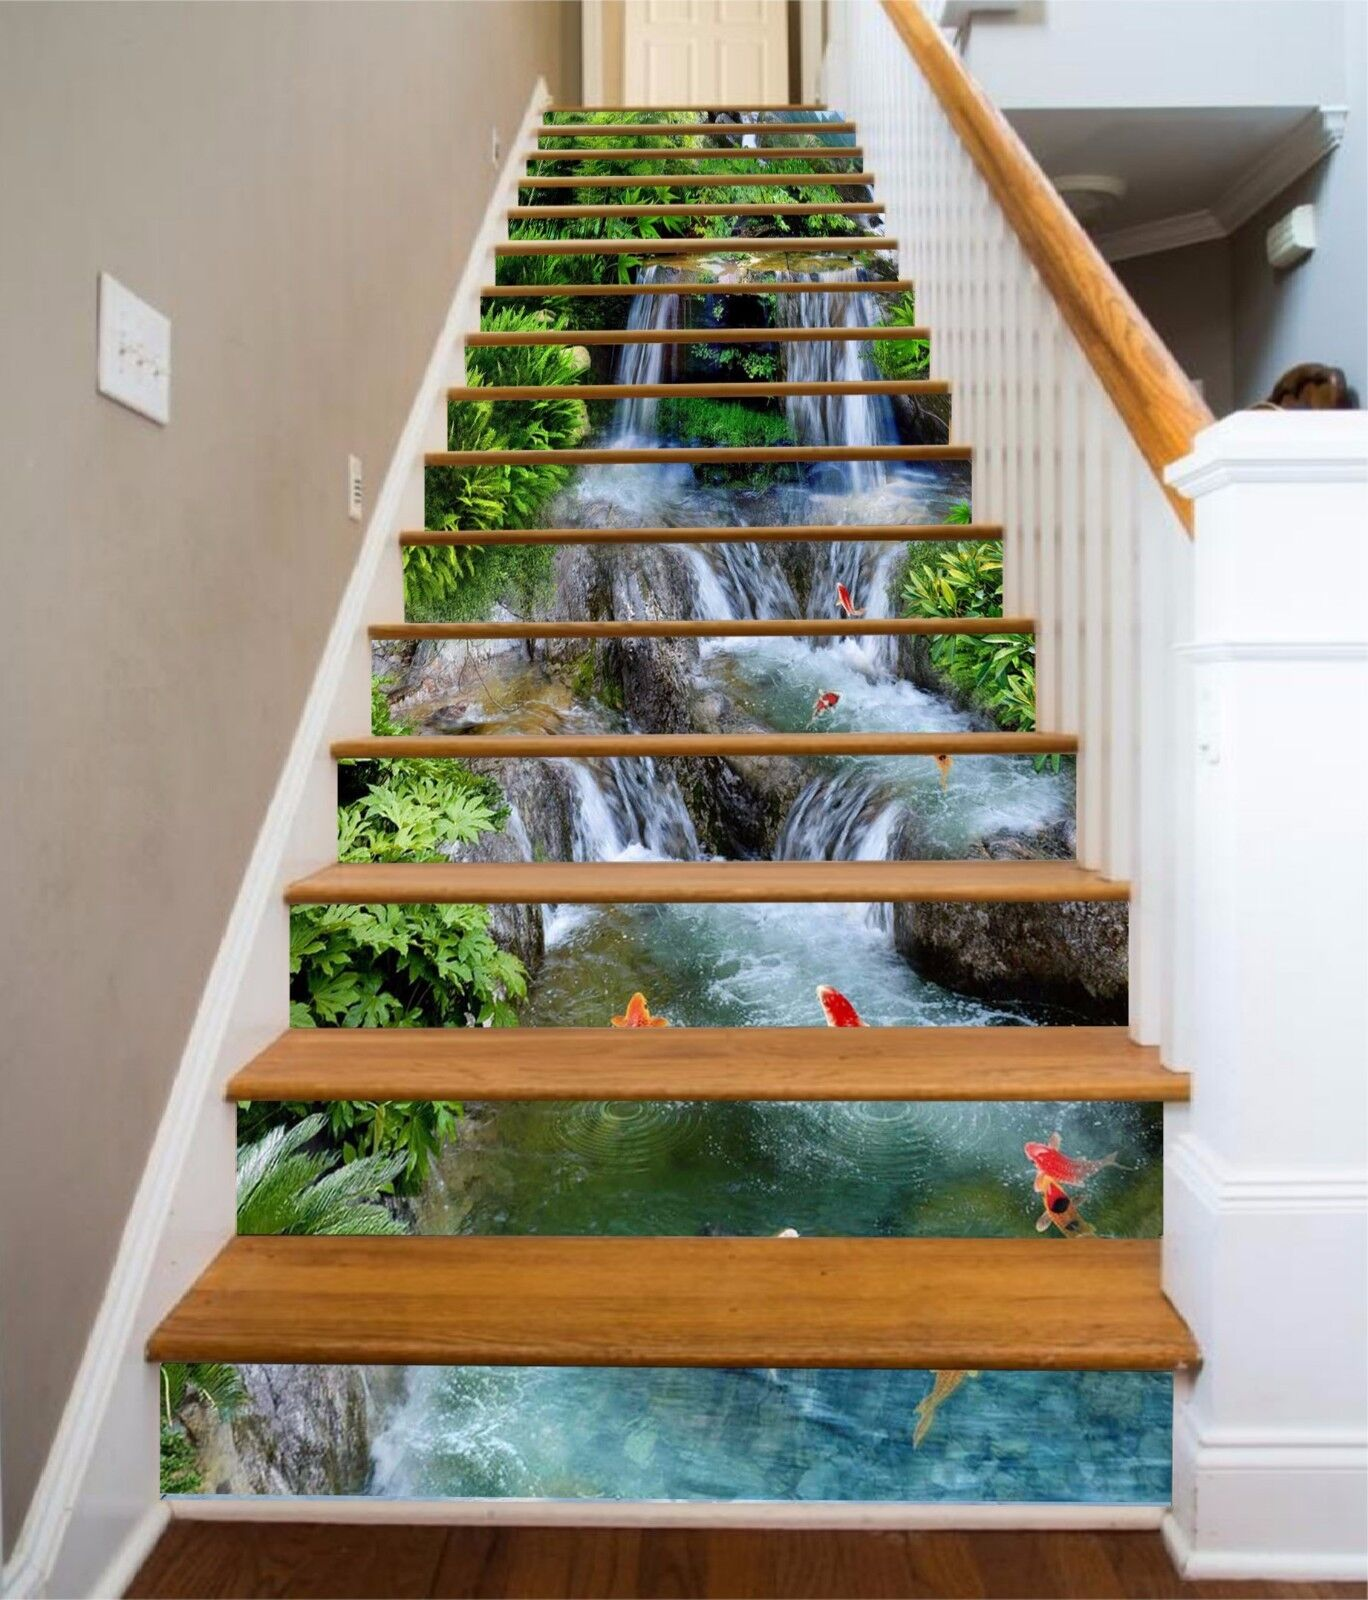 3D Stream Fishes 67 Stair Risers Decoration Photo Mural Vinyl Decal Wallpaper AU